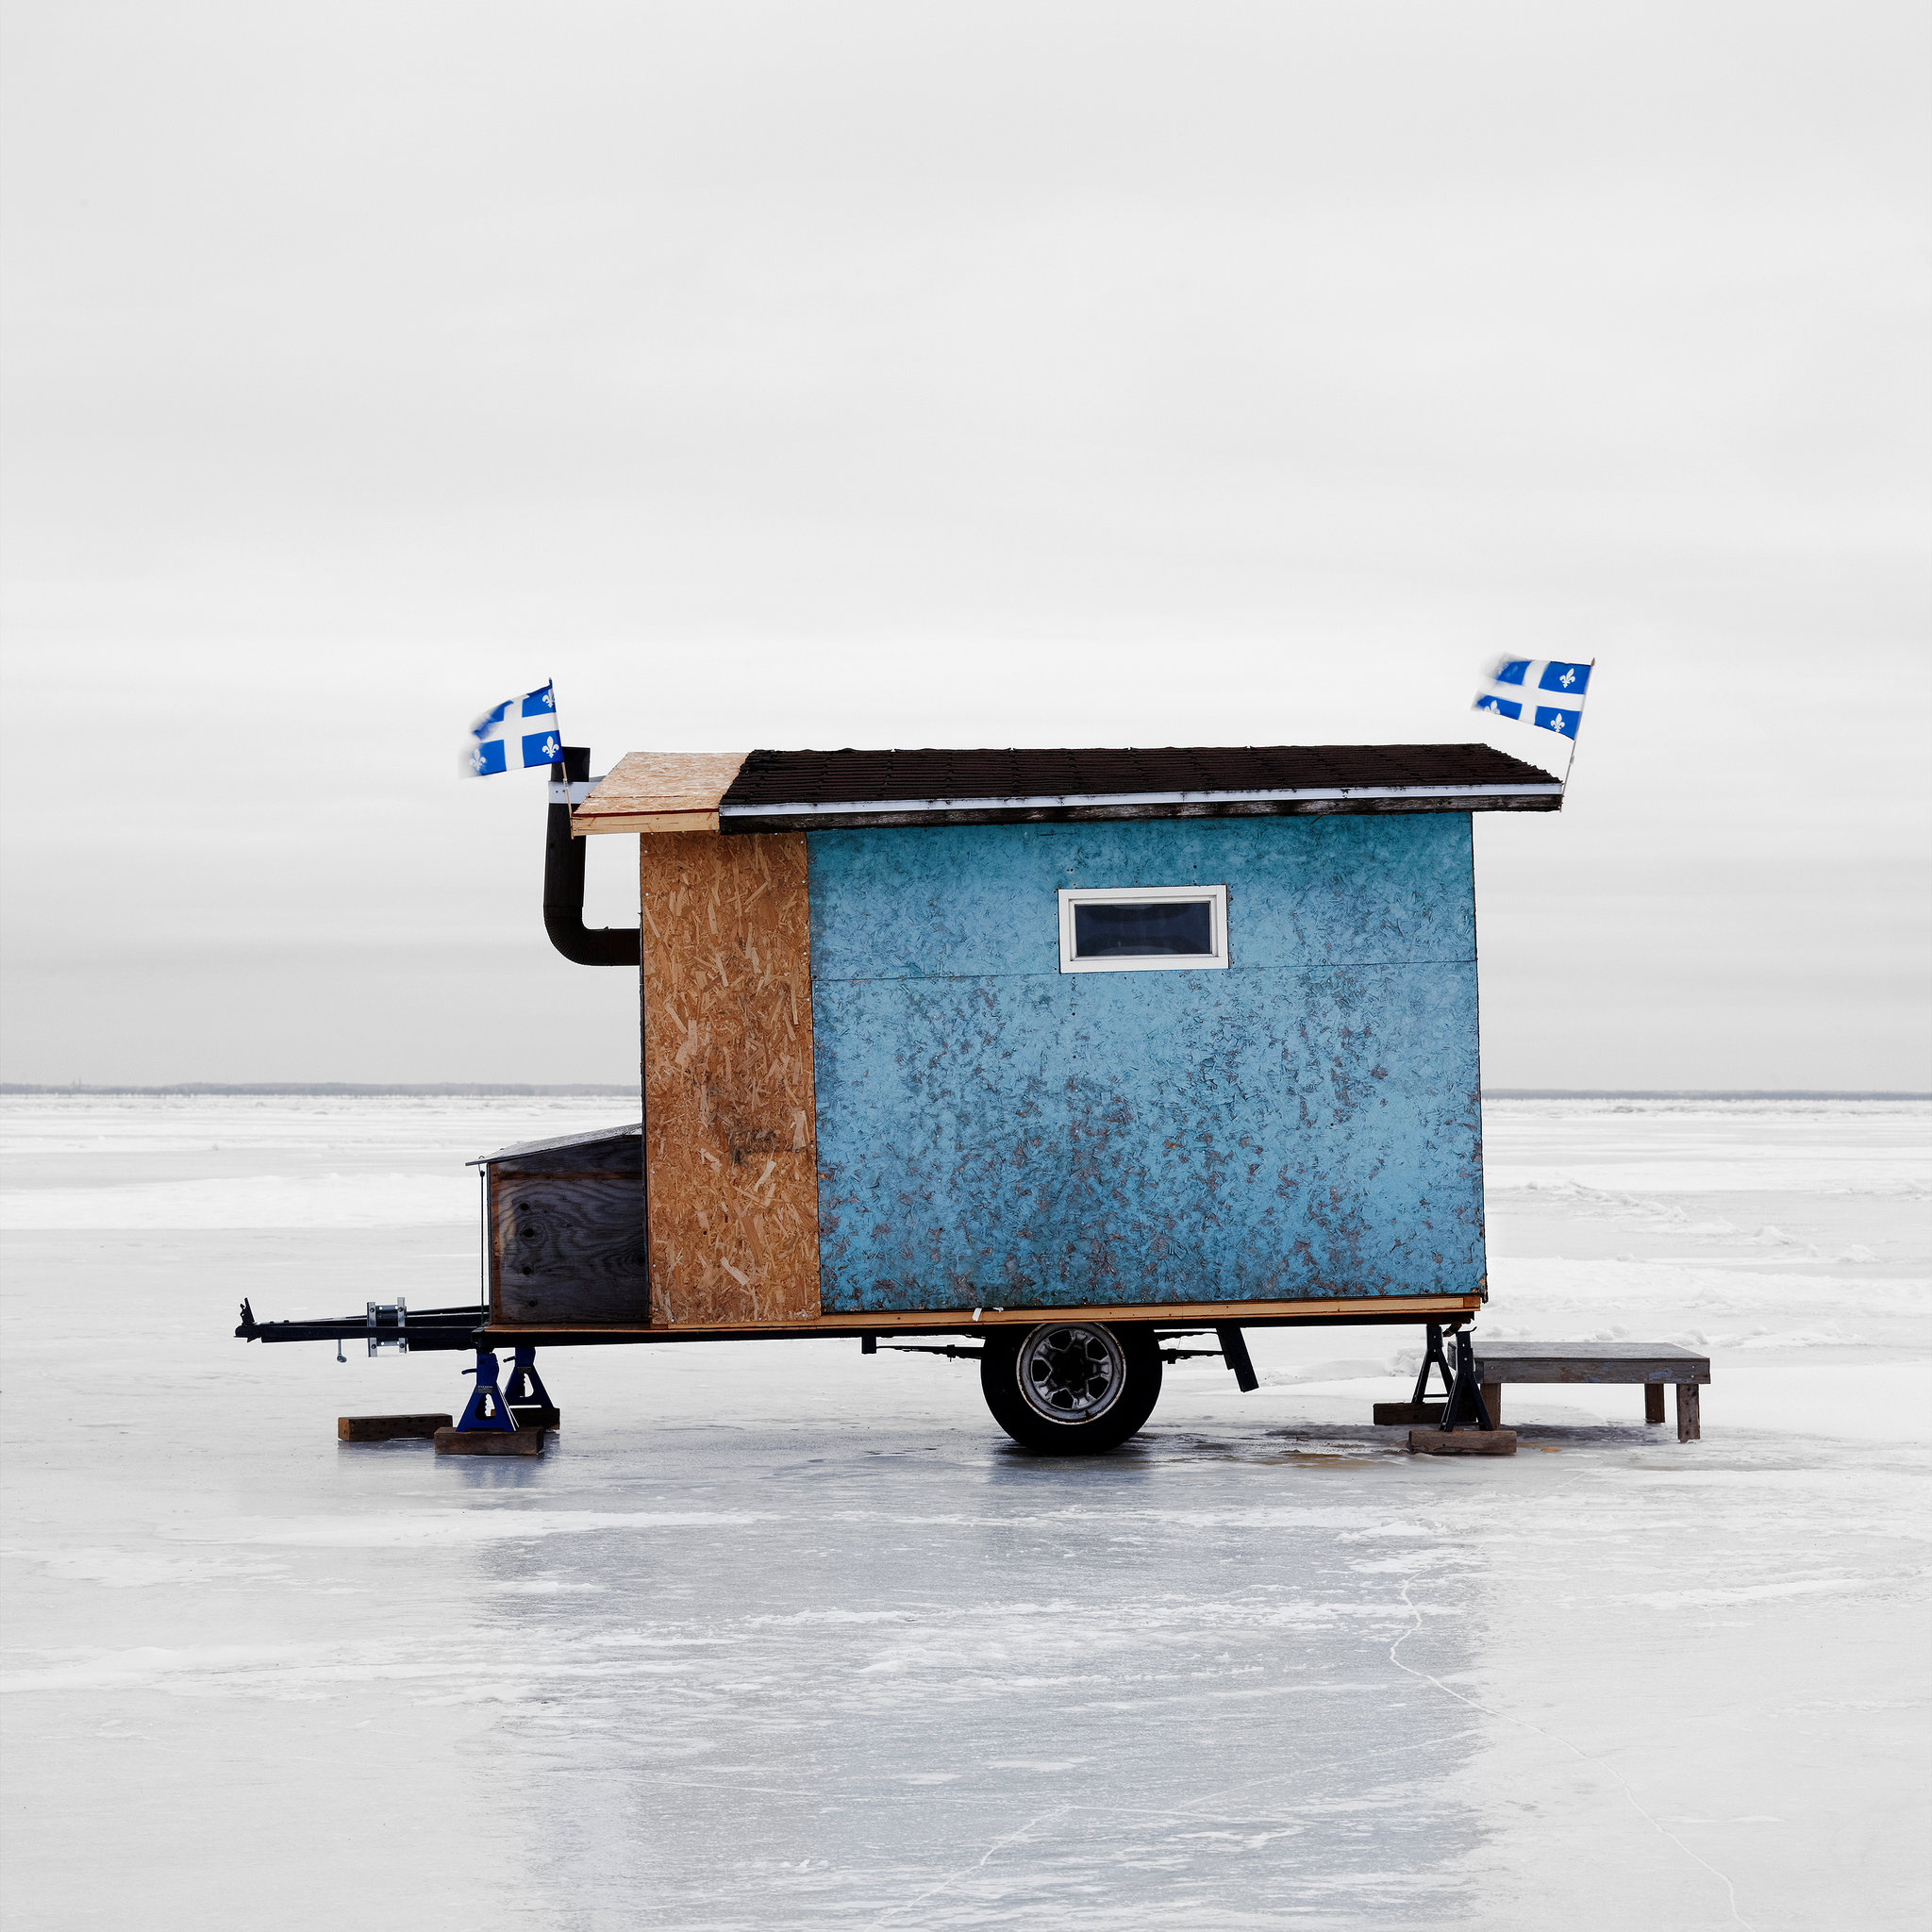 Hut Design: Photographer Documents The Diverse Designs Of Canadian Ice